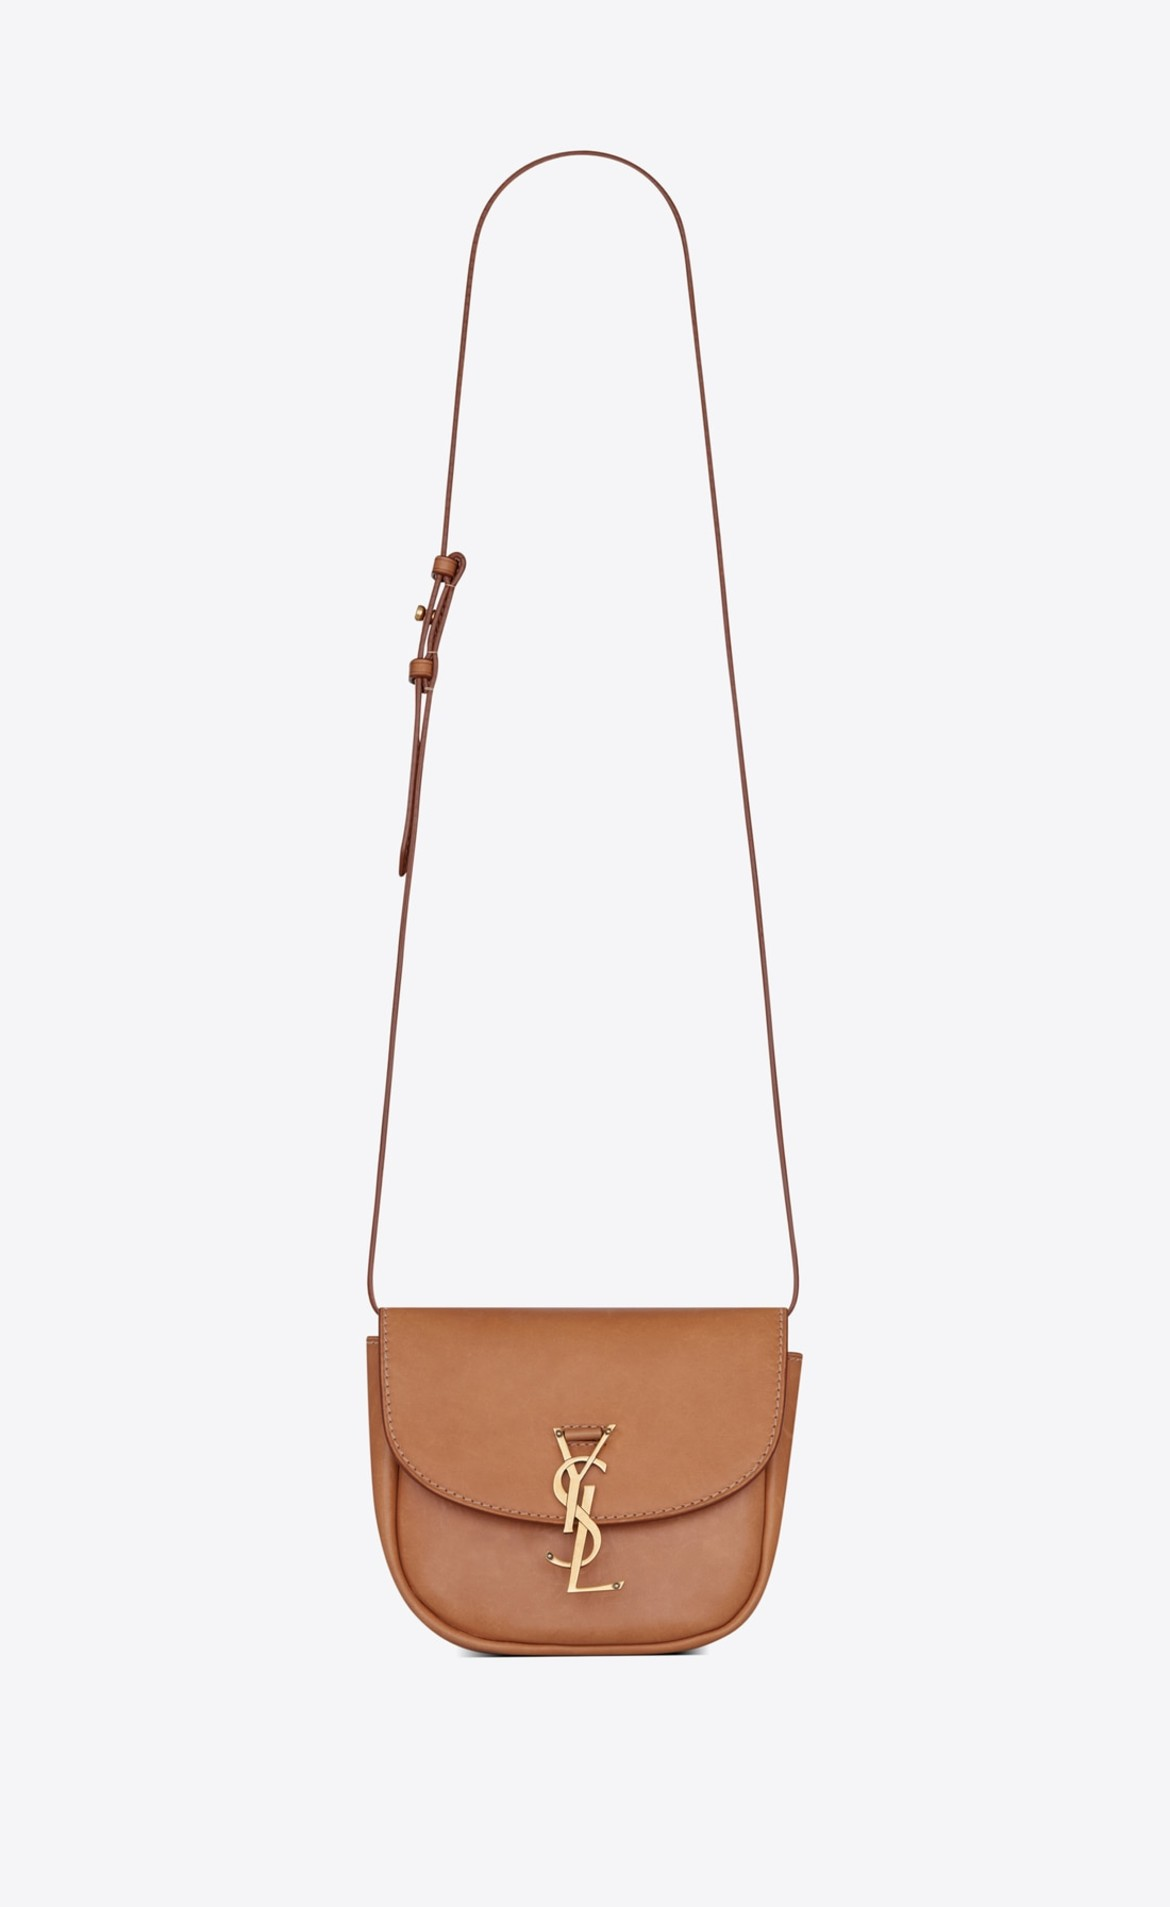 KAIA SMALL SATCHEL IN SMOOTH VINTAGE LEATHER HK$12,900